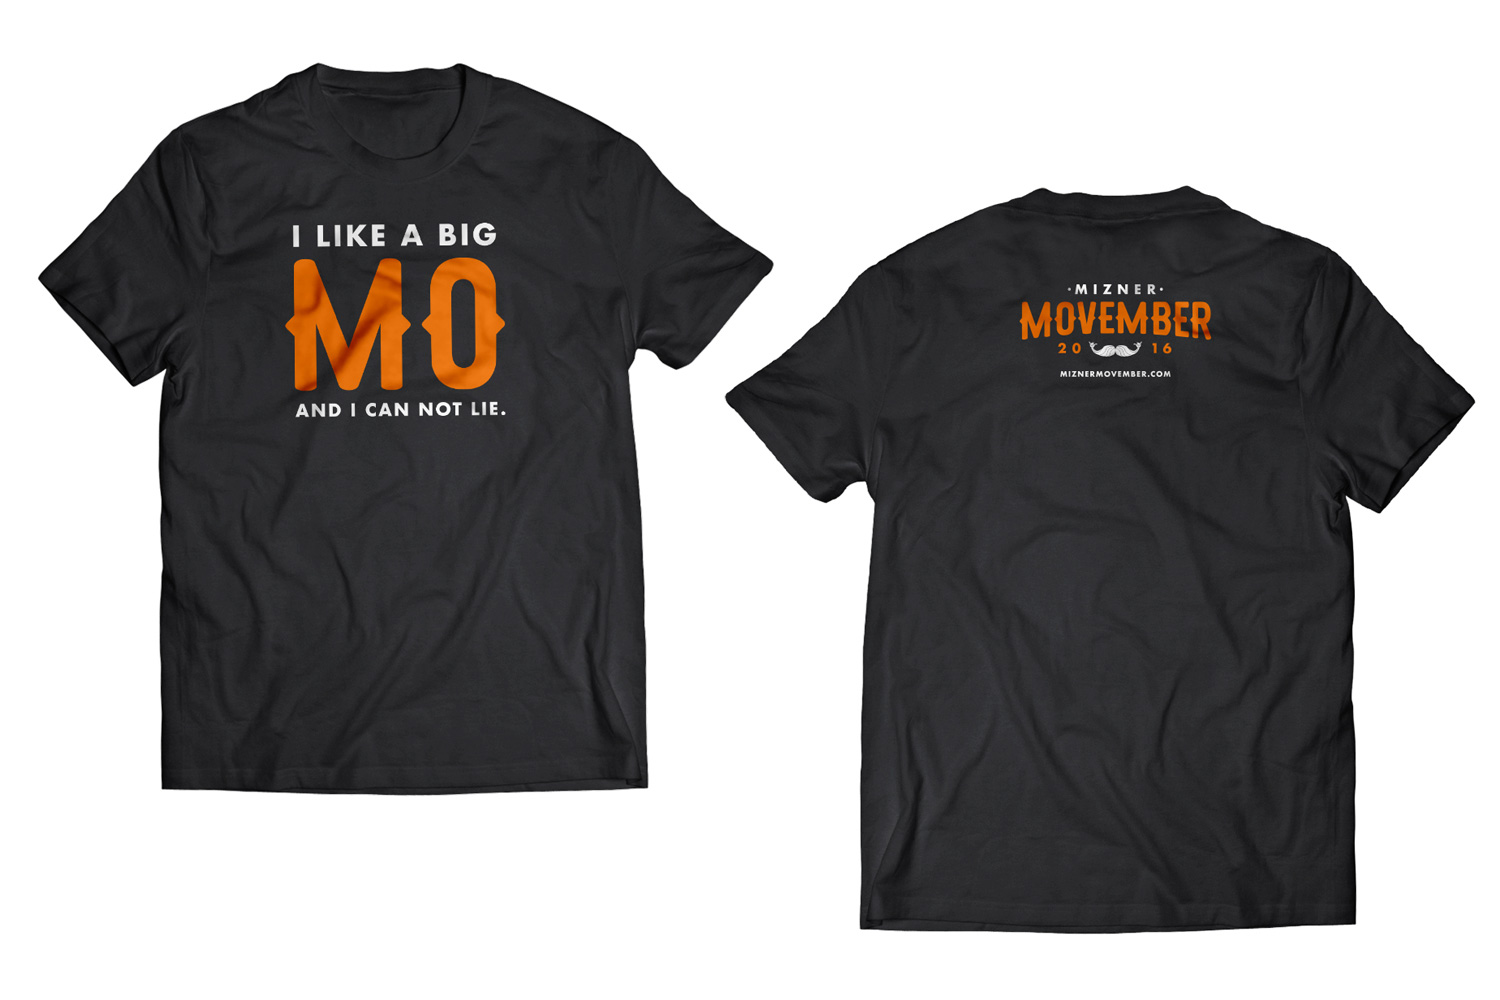 Mizner Movember I like A Big Mo Shirt